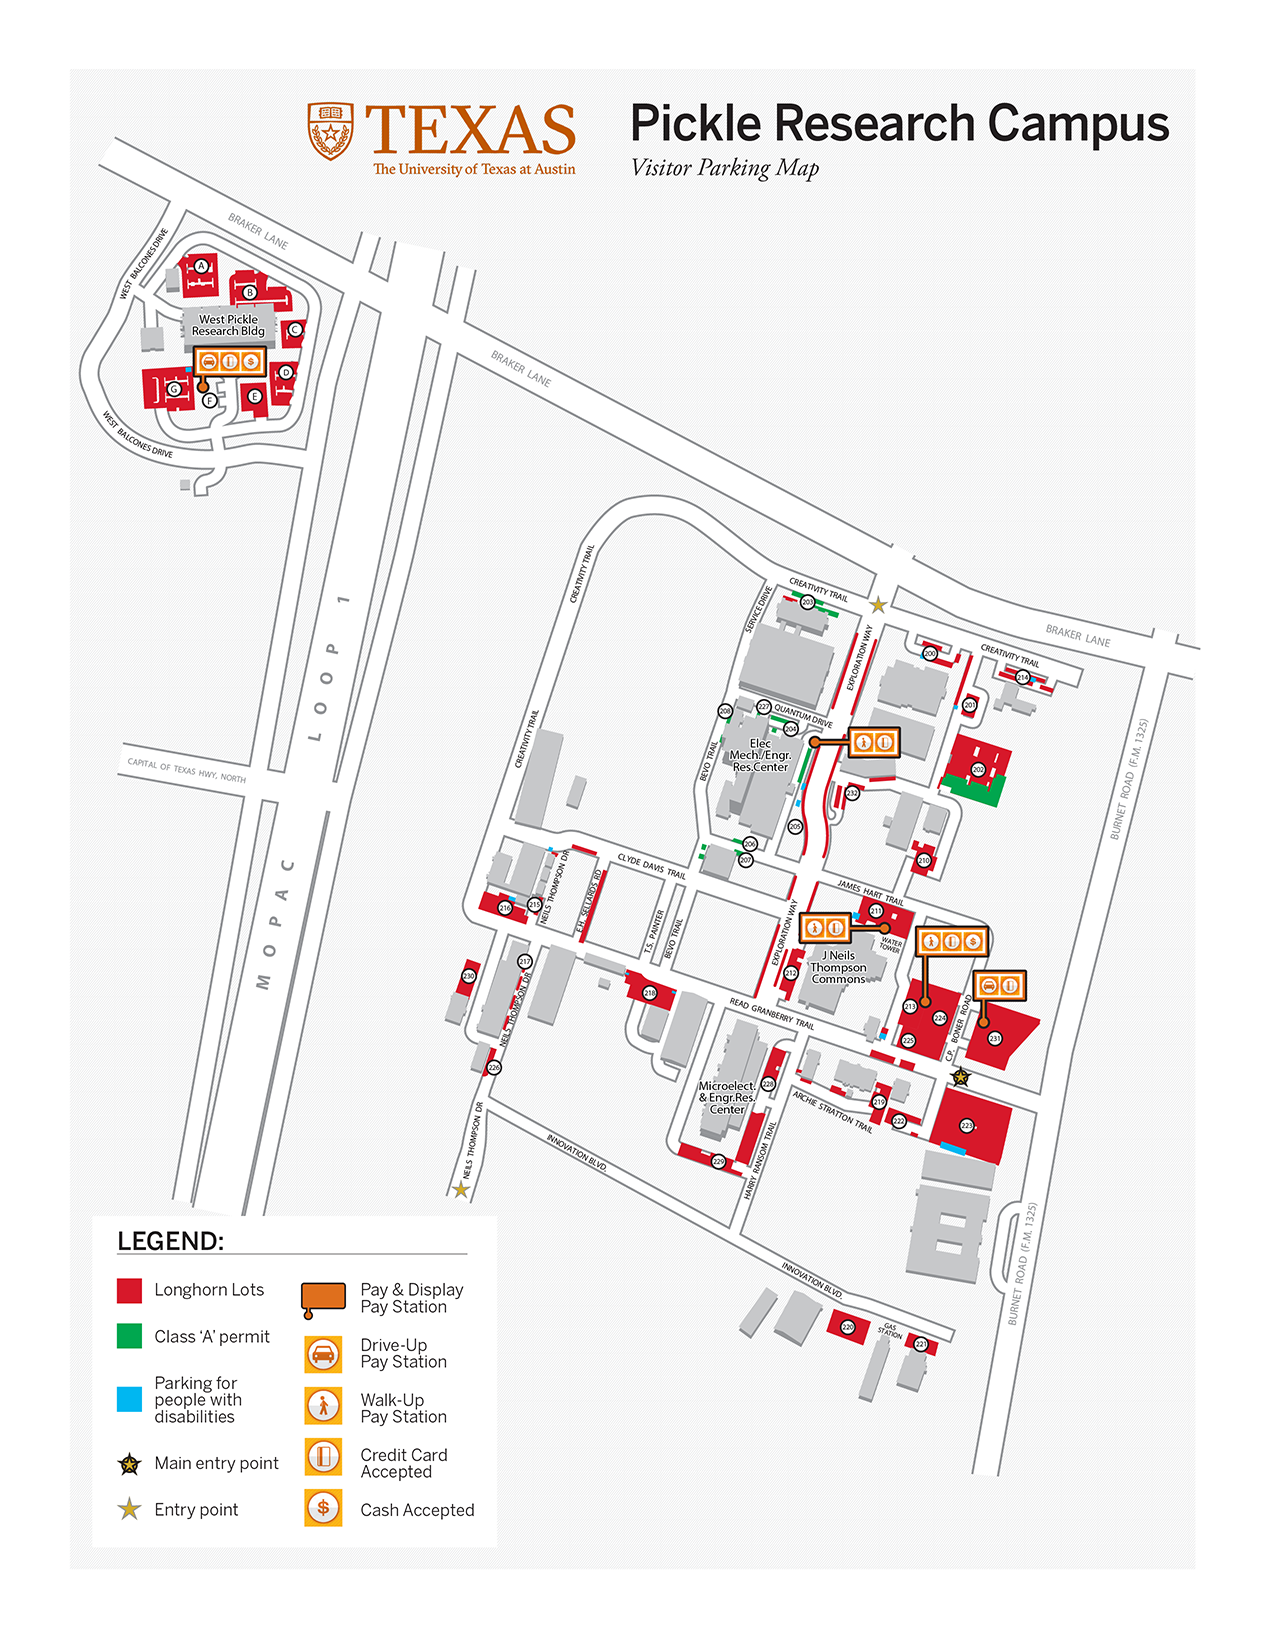 Pickle Research Campus (PRC) & West Pickle Research Building (WPR) Maps